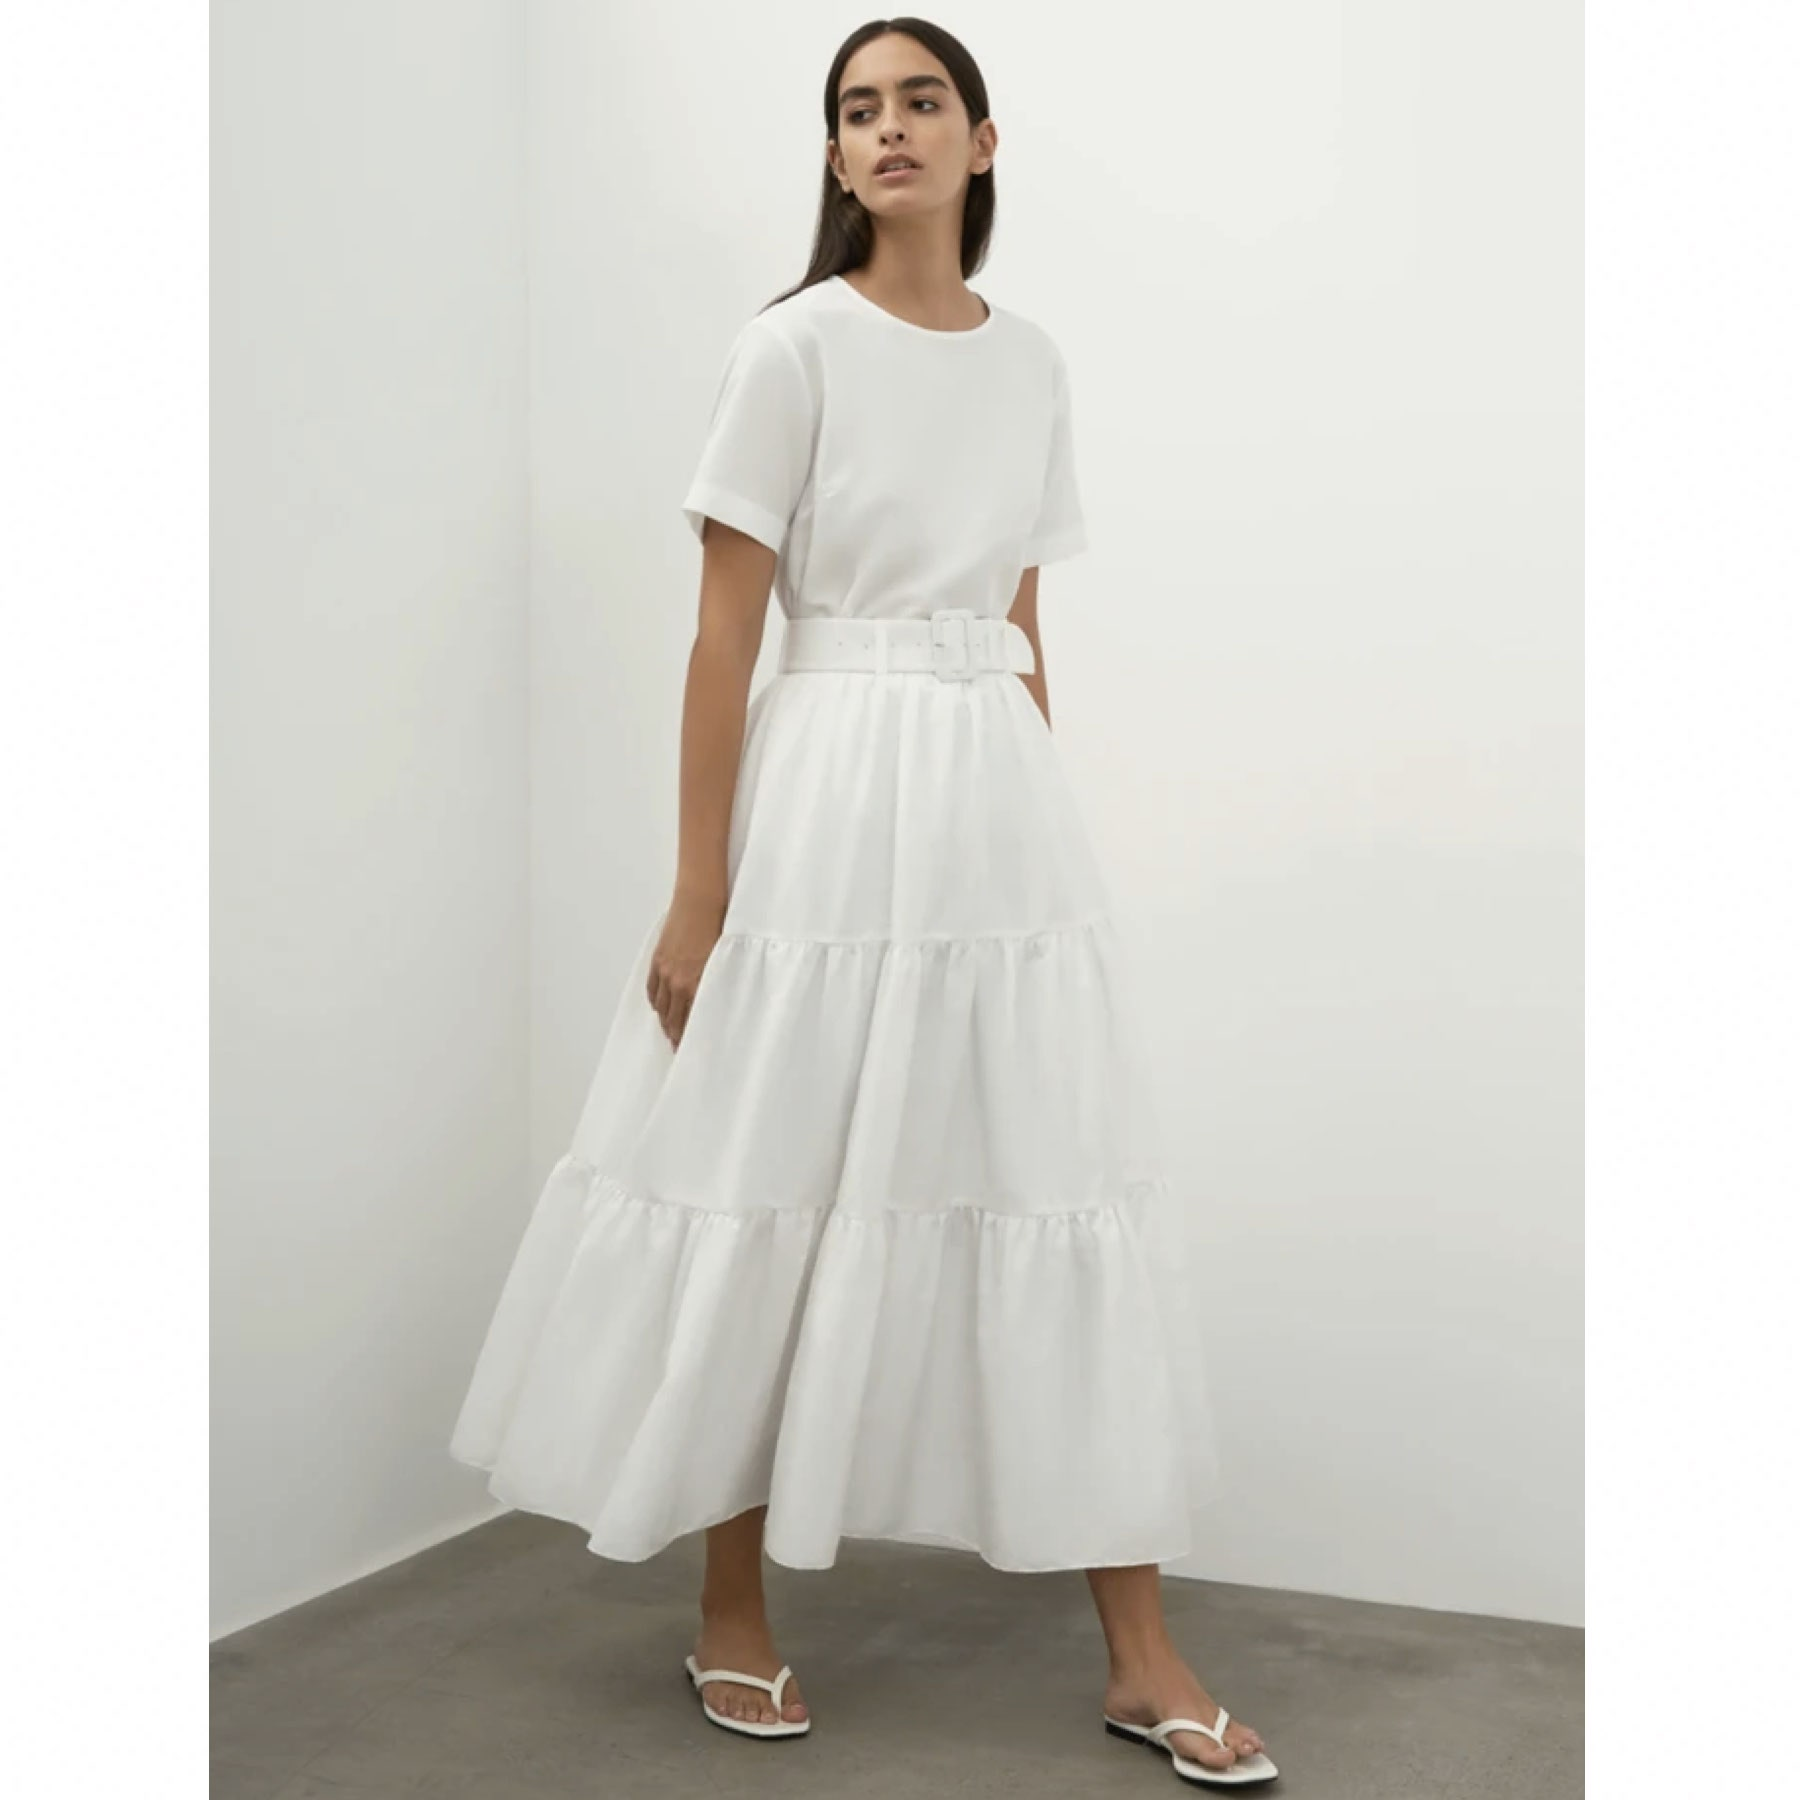 model wearing white ruffle maxi skirt with white t-shirt